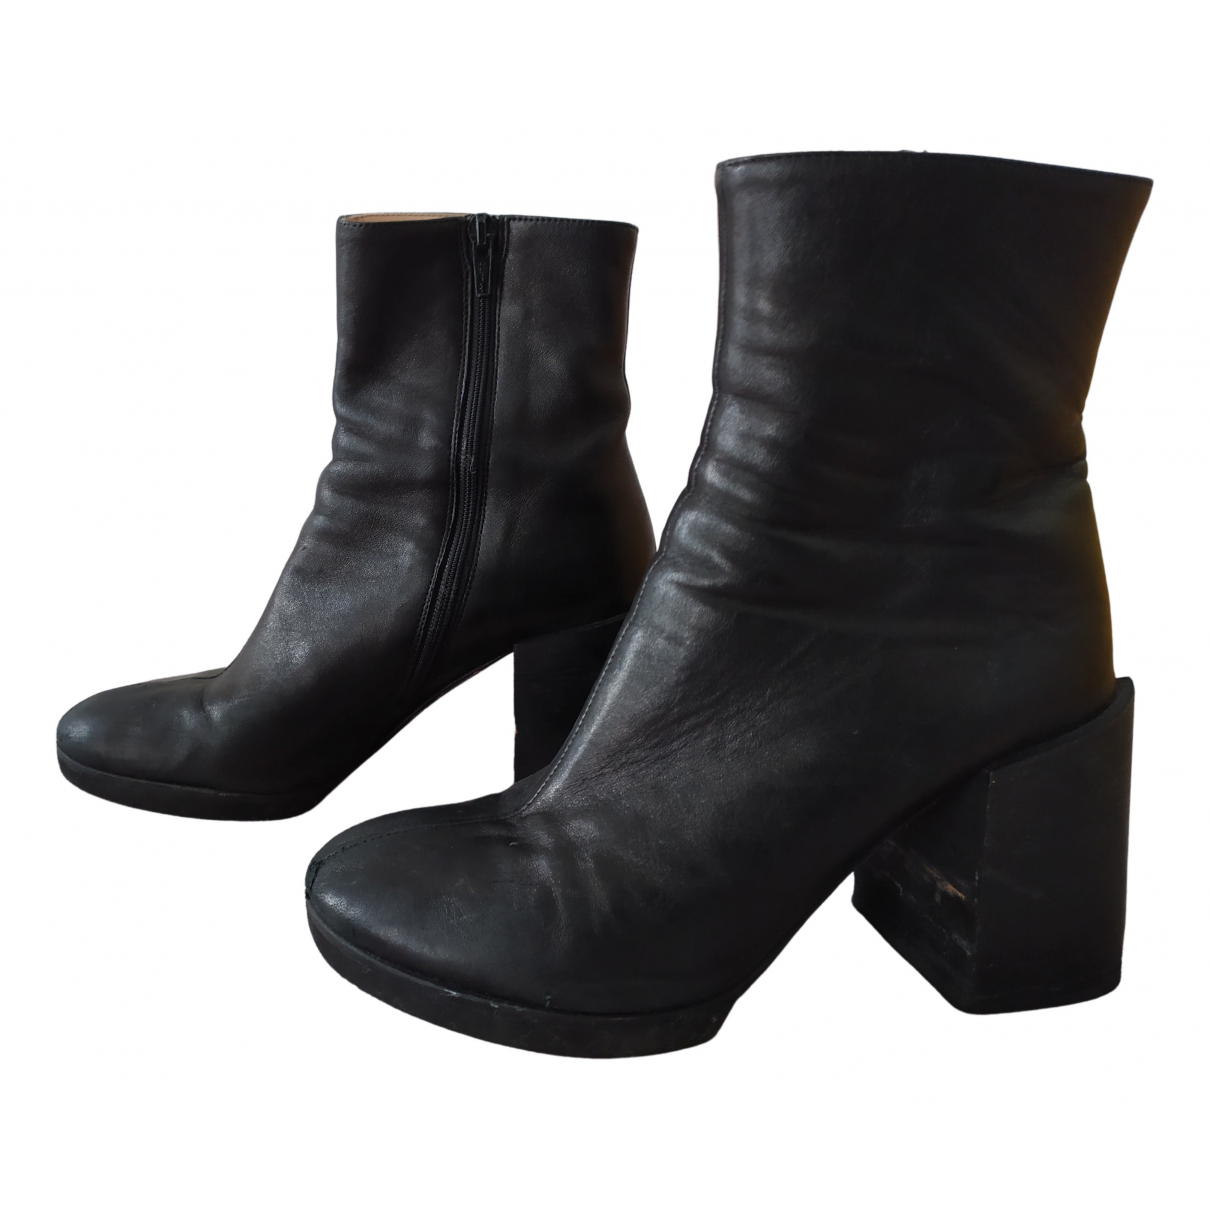 Acne Studios N Black Leather Ankle boots for Women 35 EU